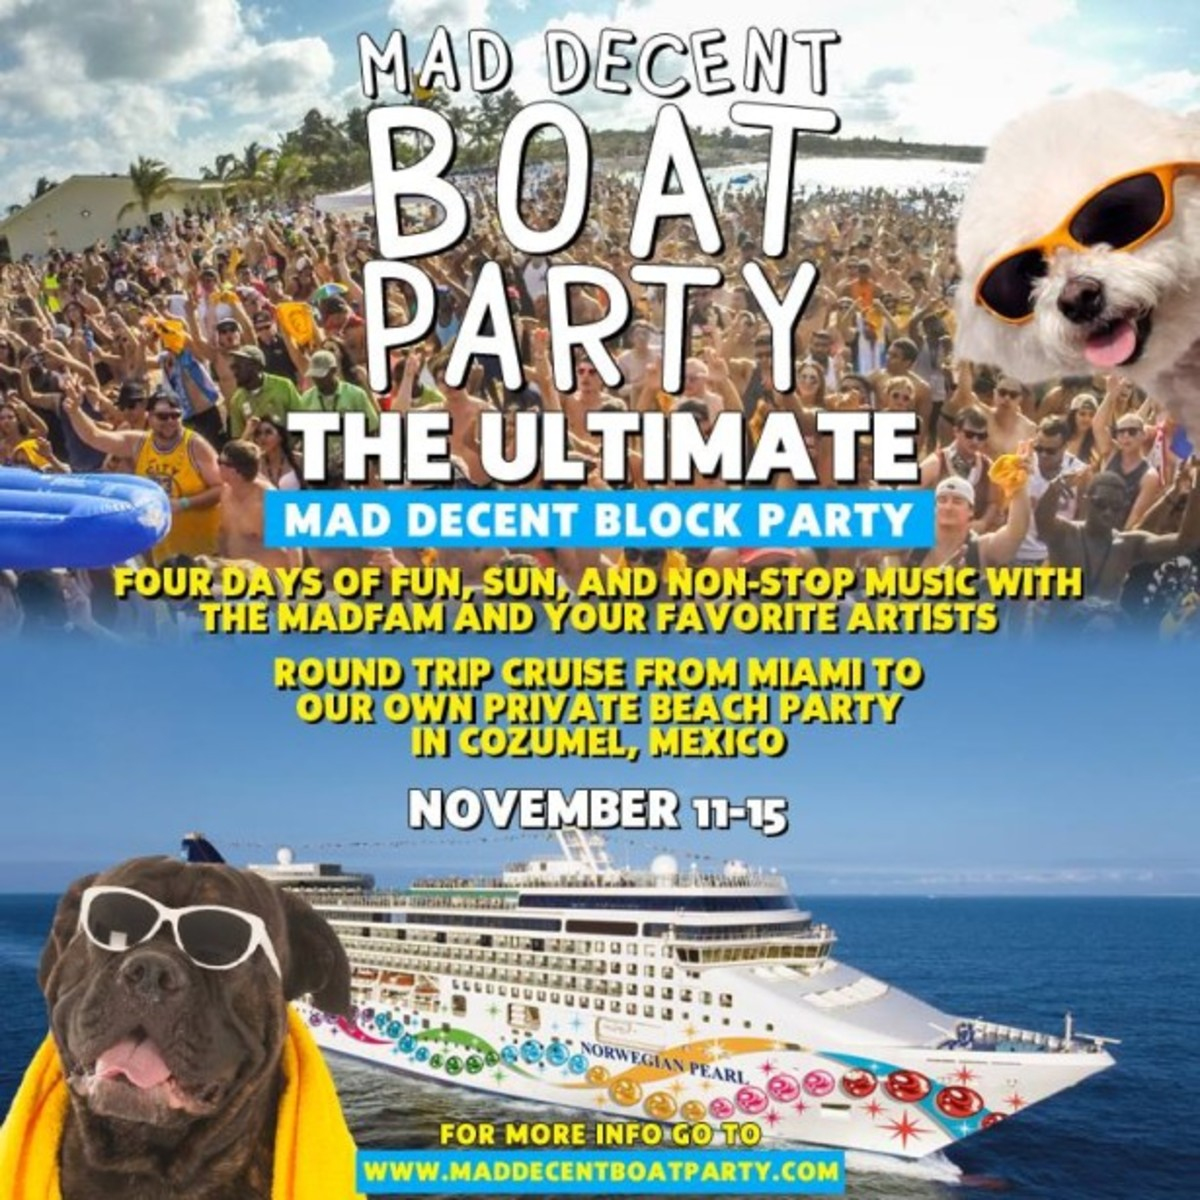 Mad Decent Boat Party Cruising To Cozumel